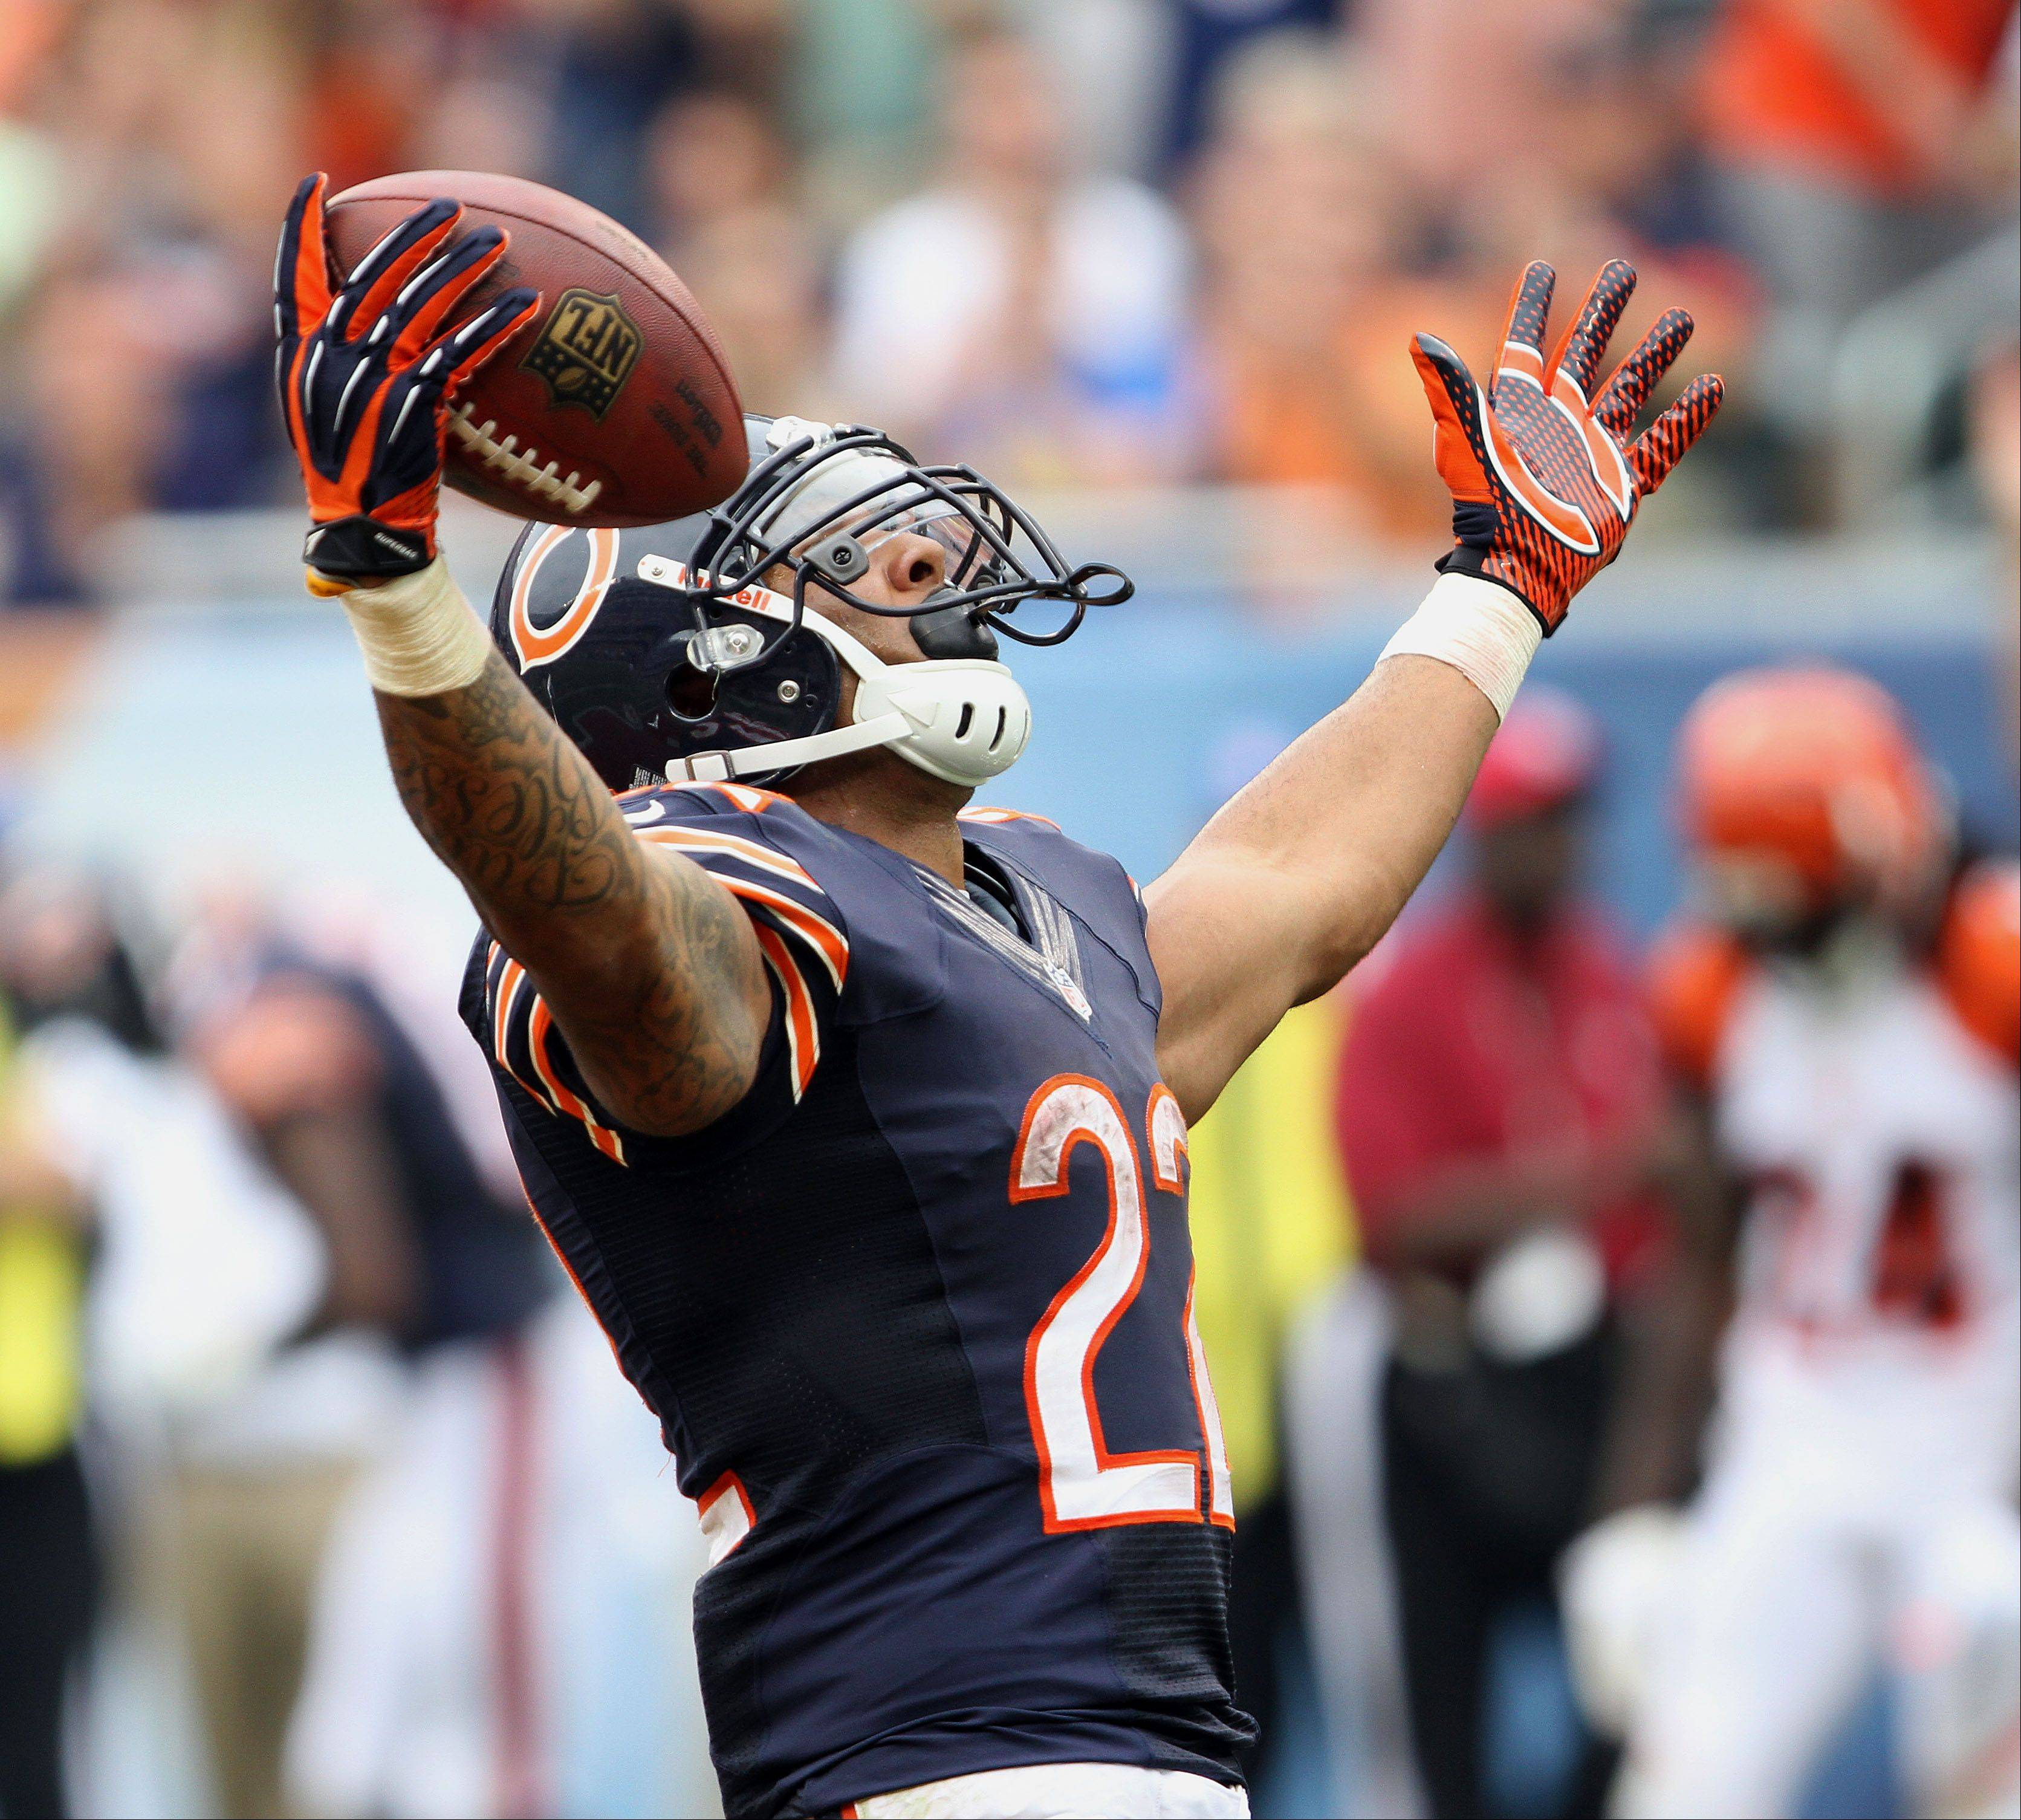 Steve Lundy/slundy@dailyherald.comChicago Bears running back Matt Forte celebrates after his 3rd quarter touchdown during their opening day game against Cincinnati Sunday at Soldier Field.